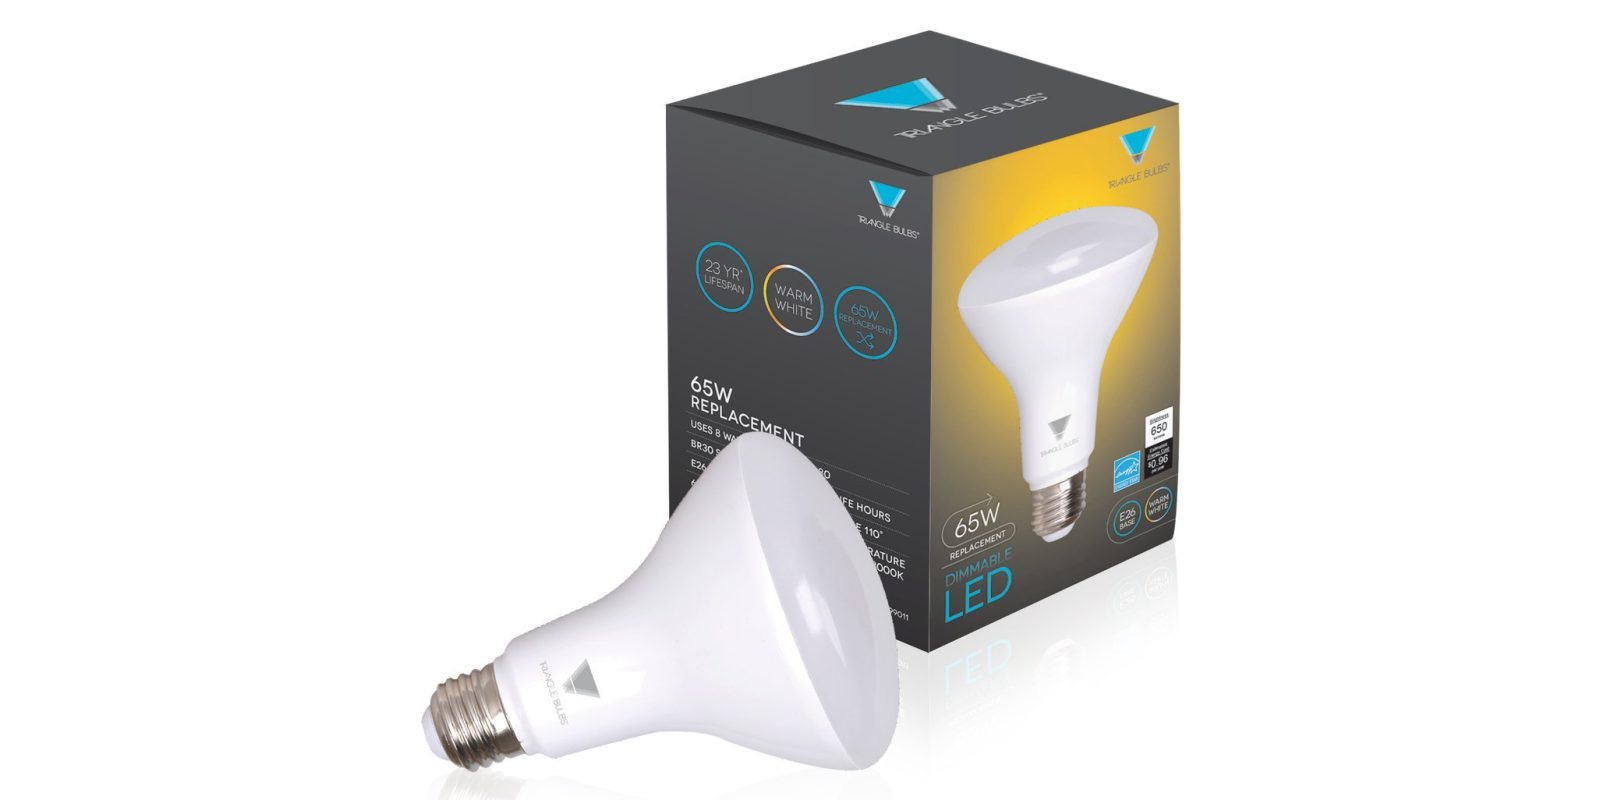 Green Deals 6 Pack Triangle 65W BR30 Dimmable LED Light Bulbs 30 Prime Shipped More